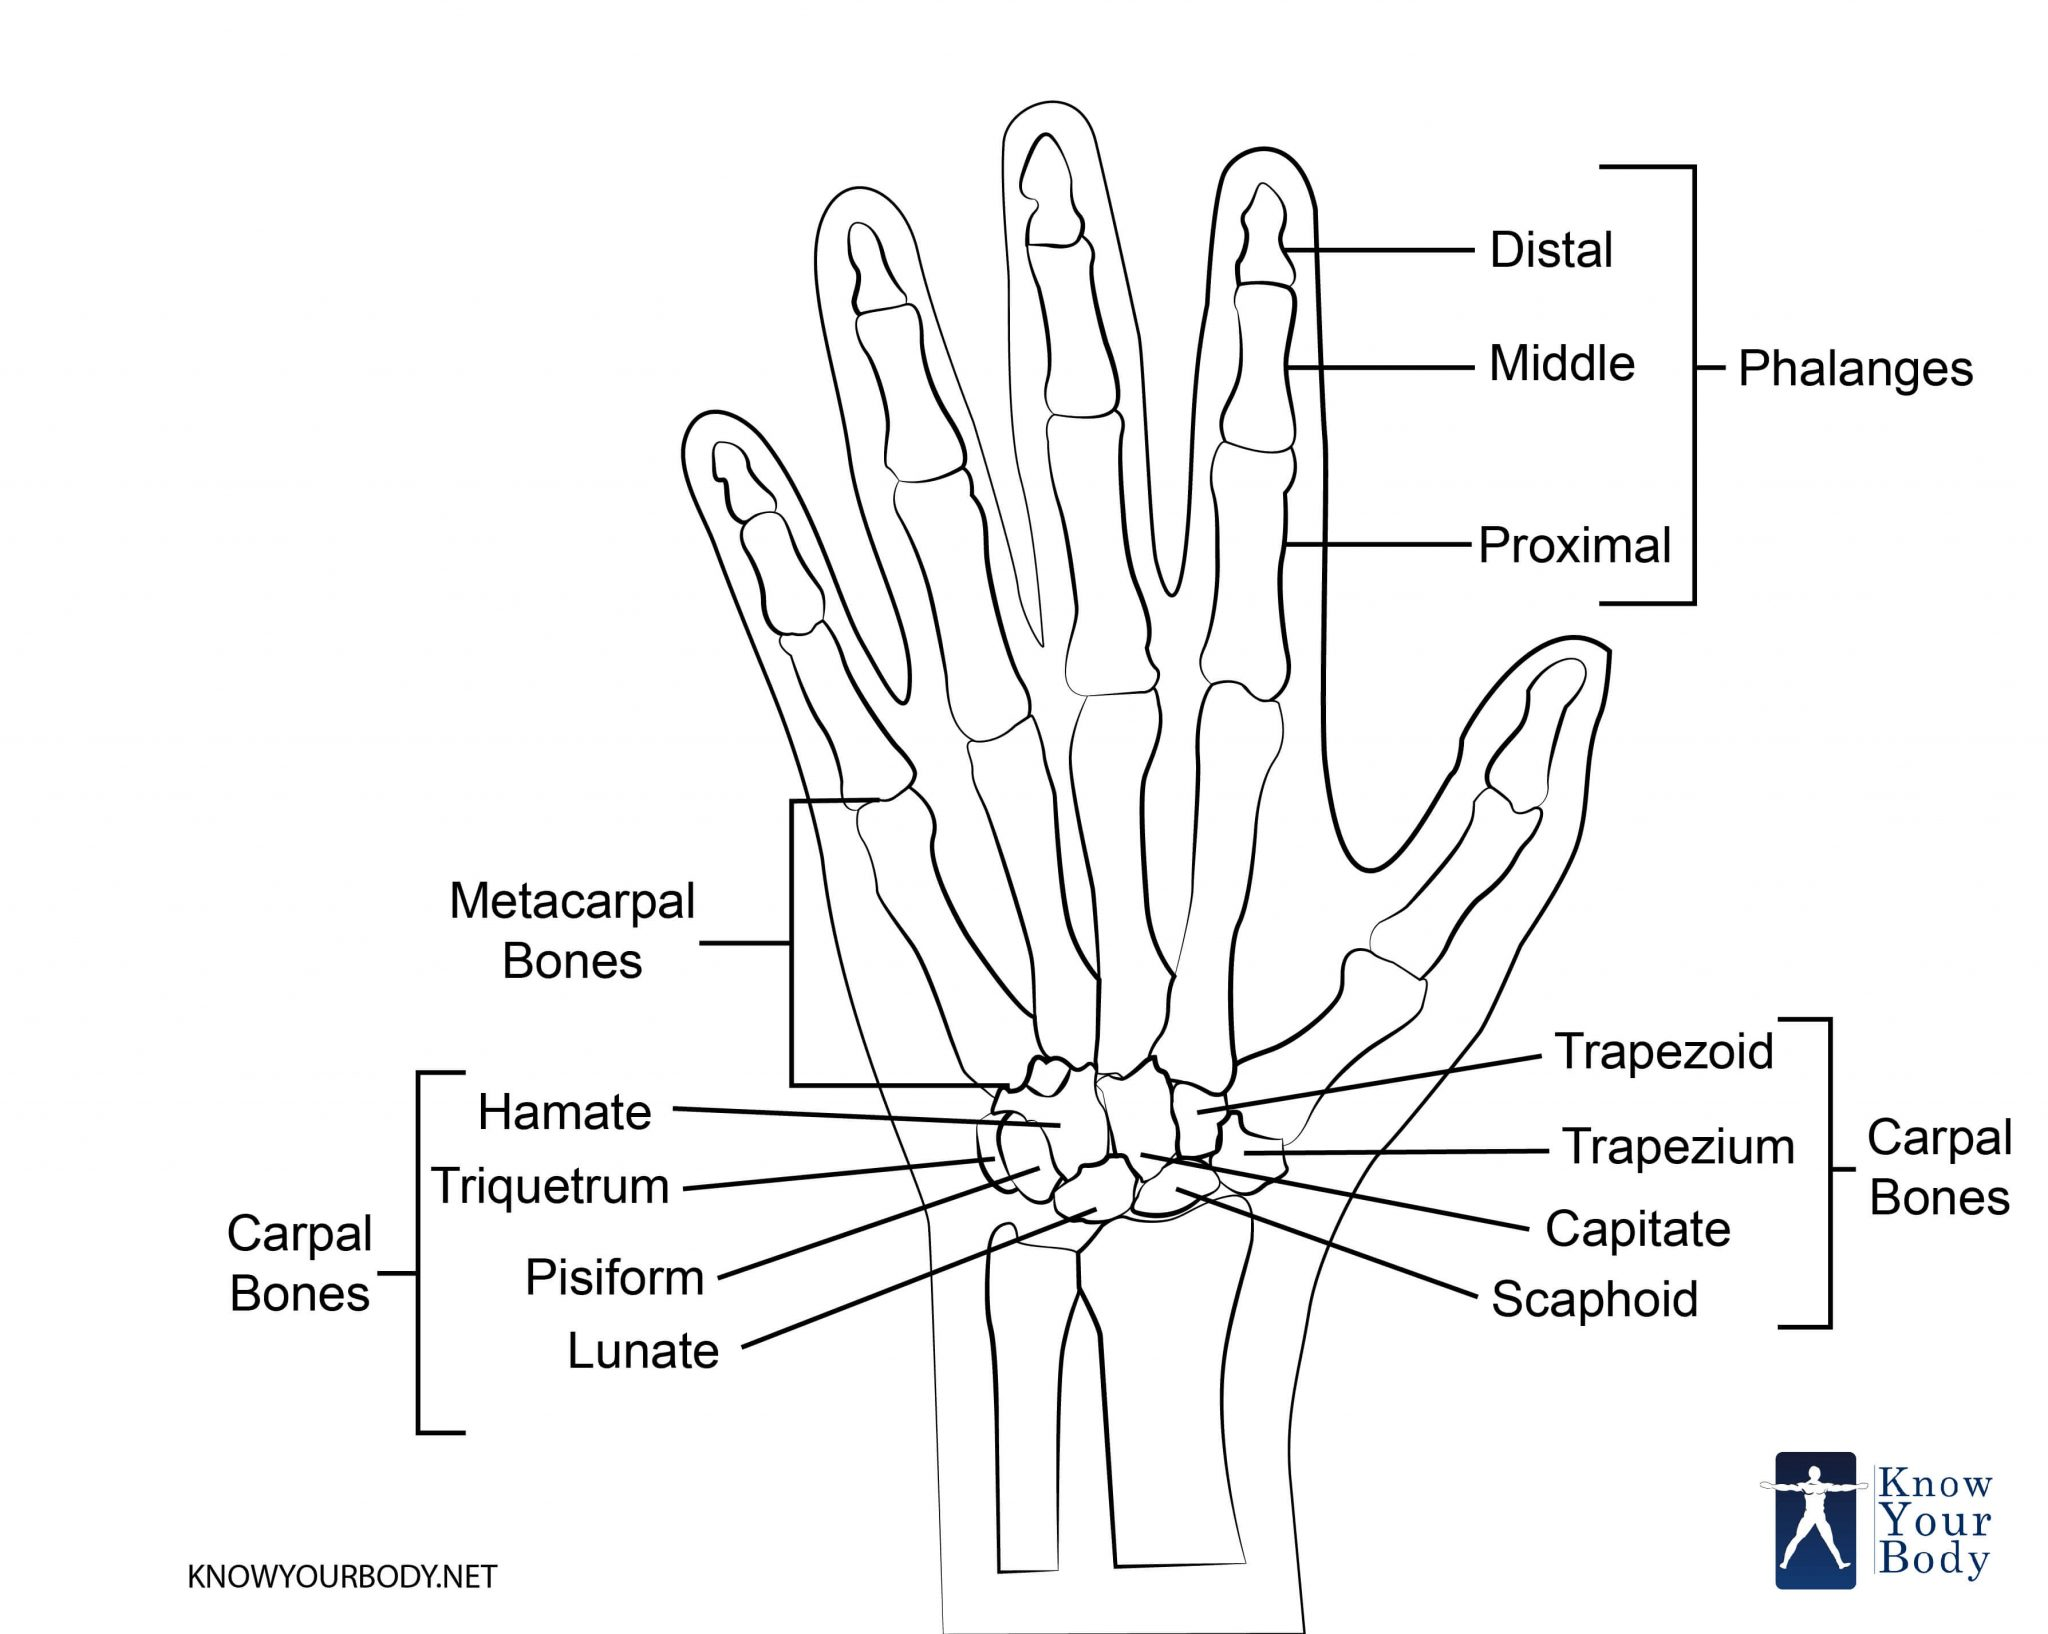 Carpal Bones Of The Hand Ligaments Tendons And Nerves